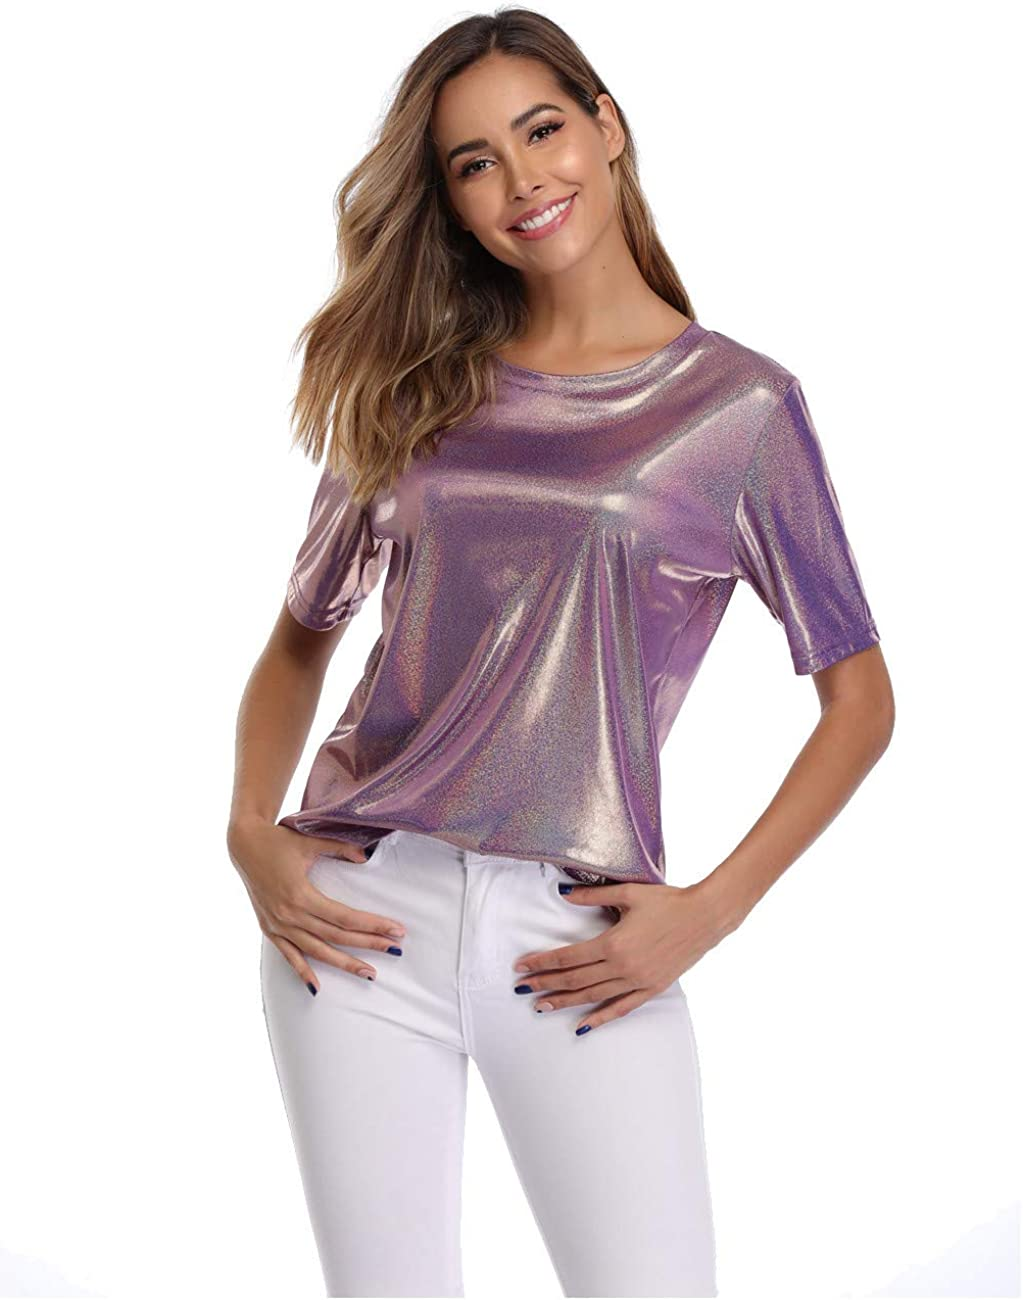 Dilgul Summer Tops And T Shirt per Donna Shimmer Sparkle Holographic Glitter Metallic Short Sleeves Blouse